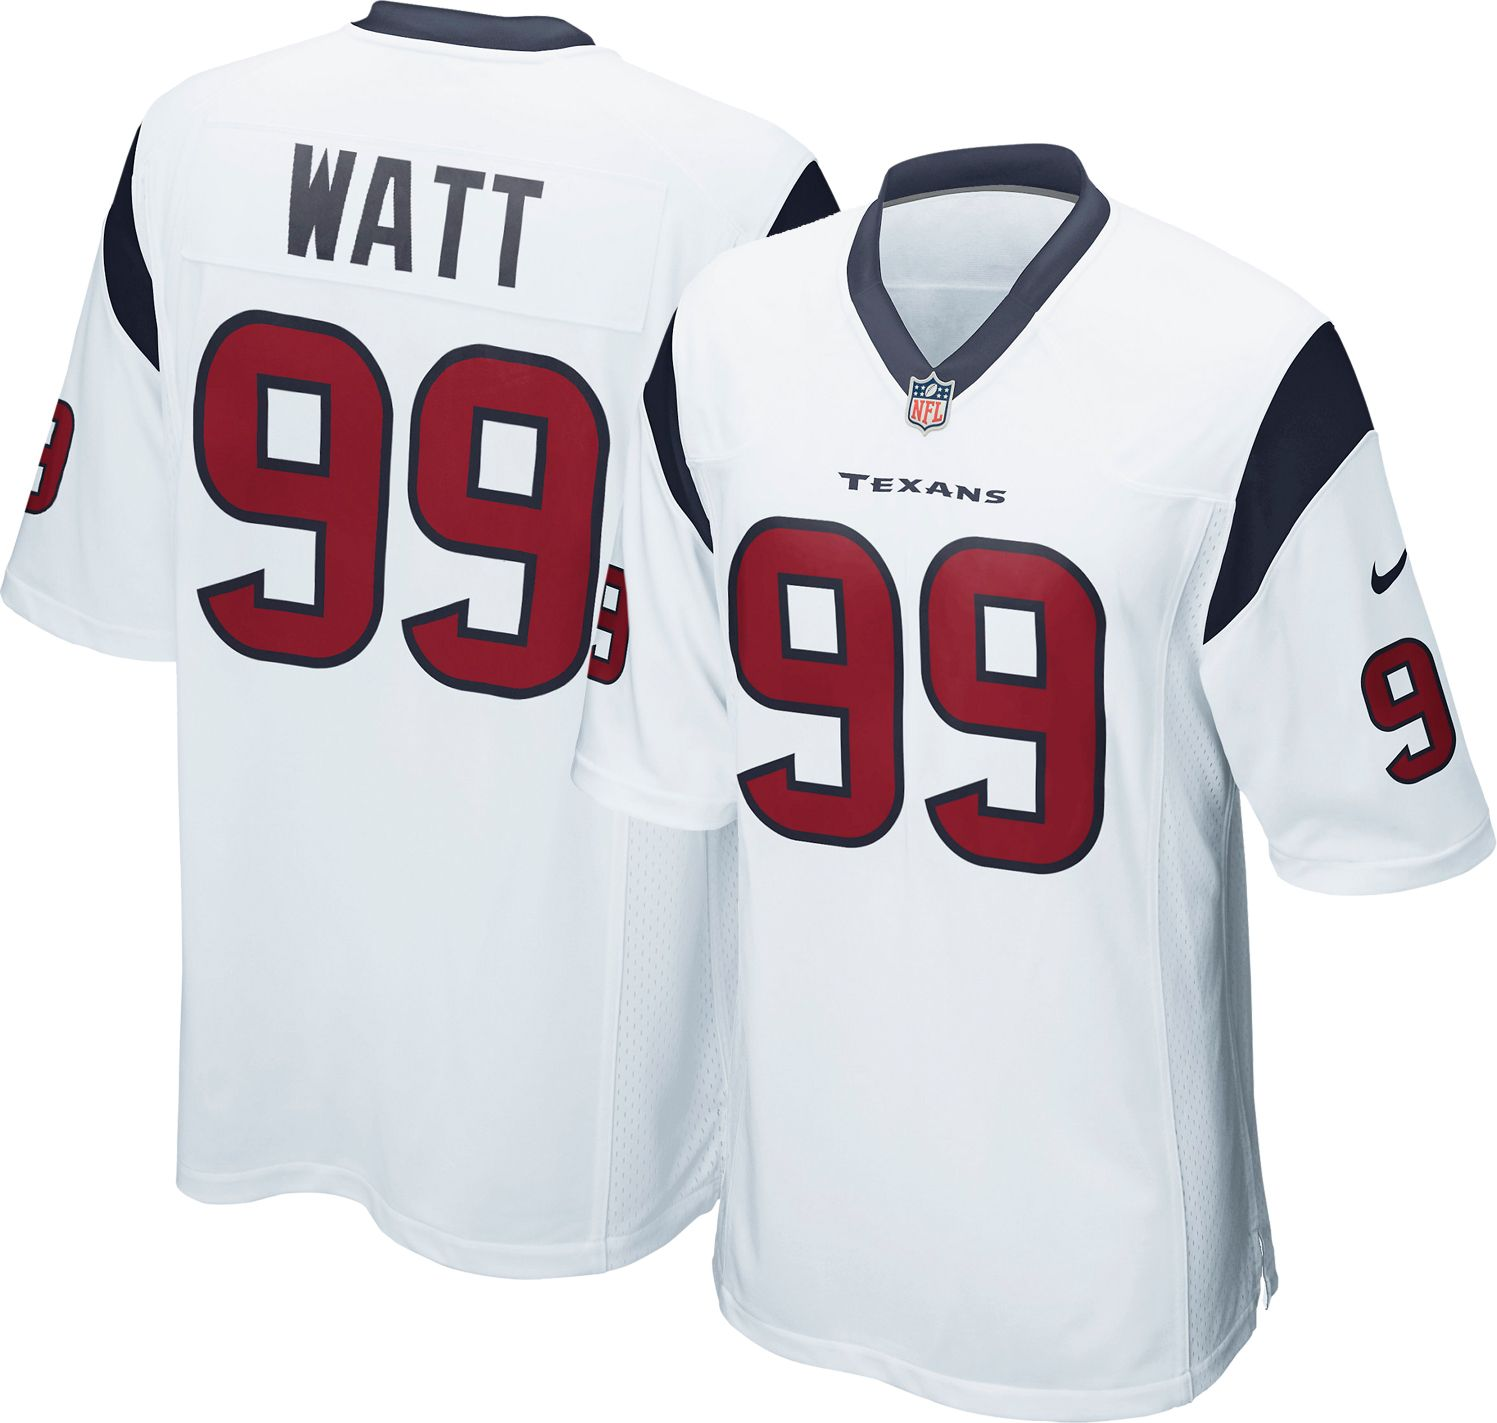 houston texans jersey schedule